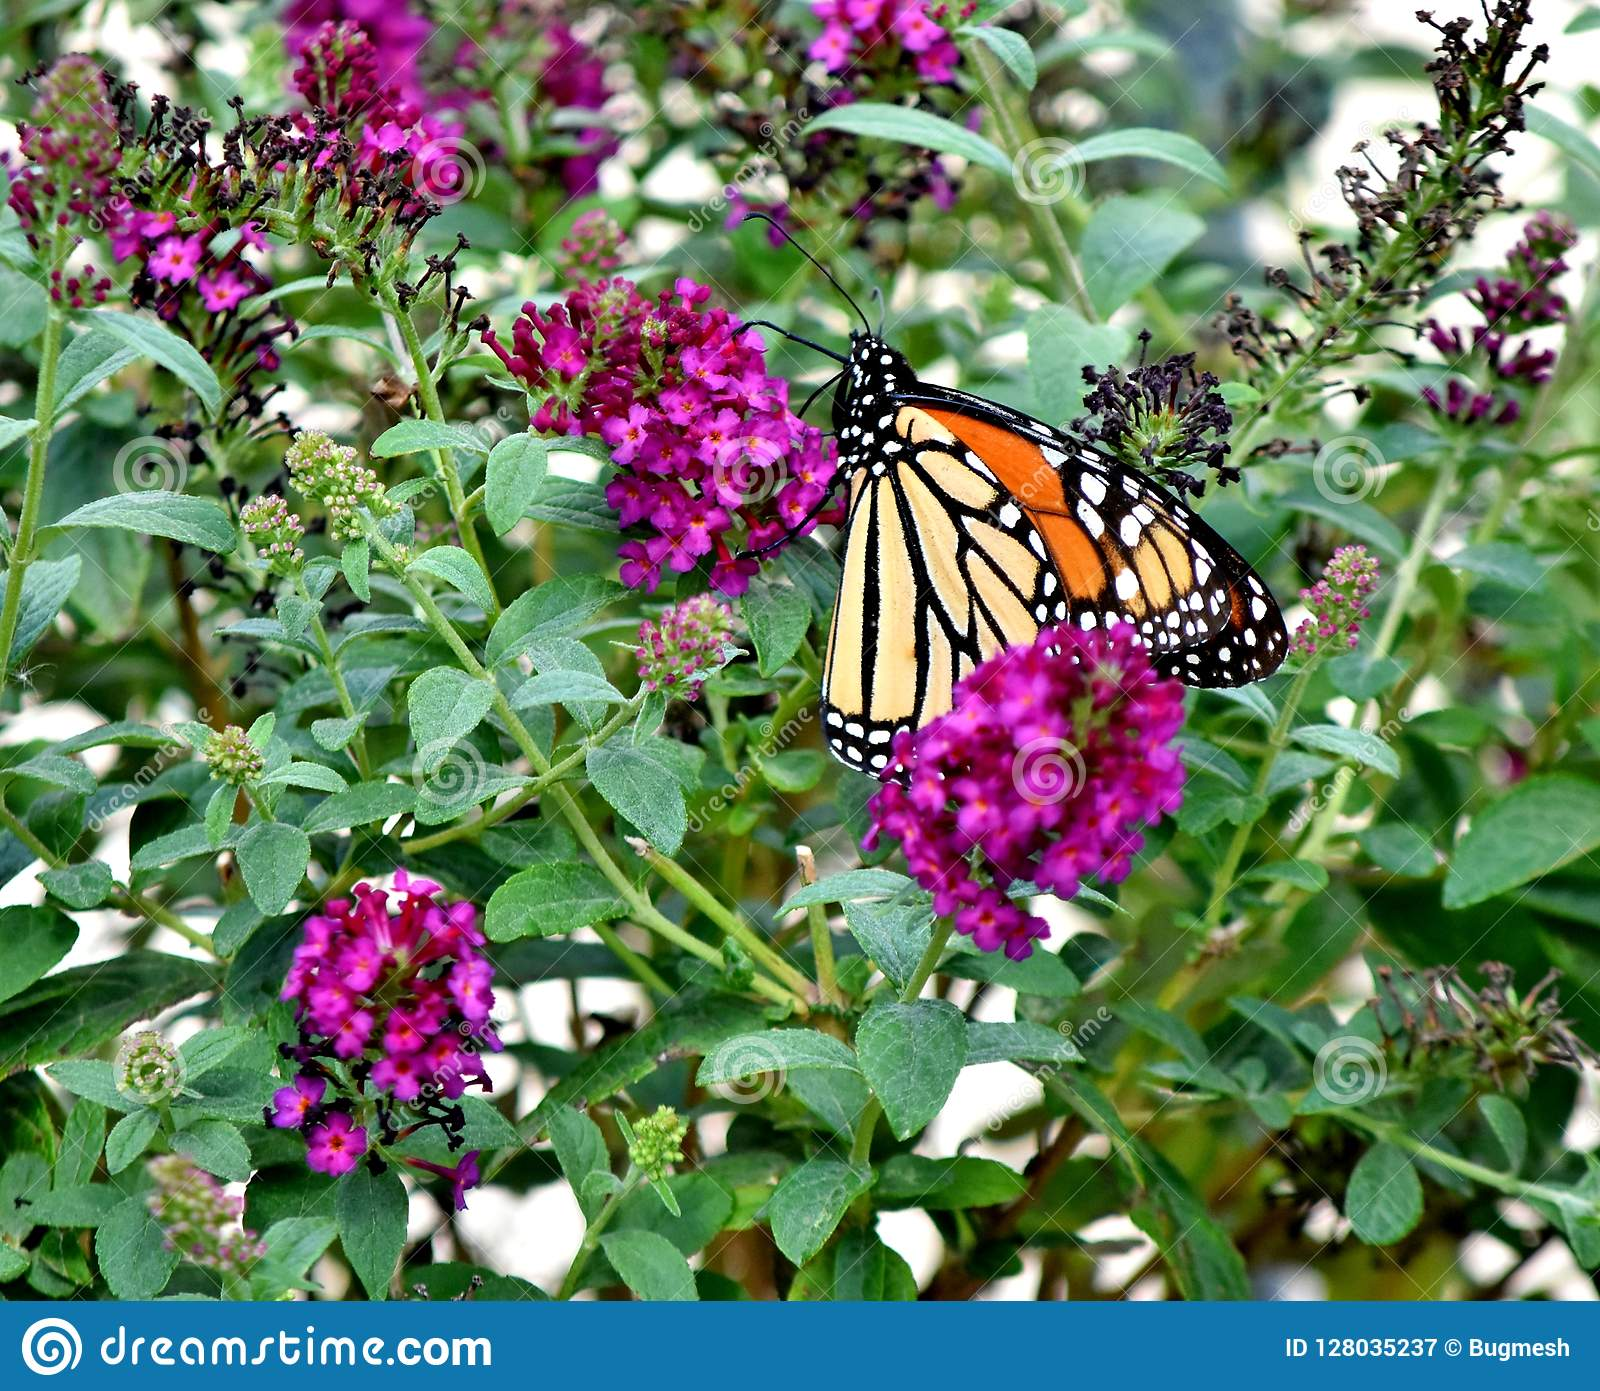 Butterfly, Monarch, Migrating South to Oklahoma City